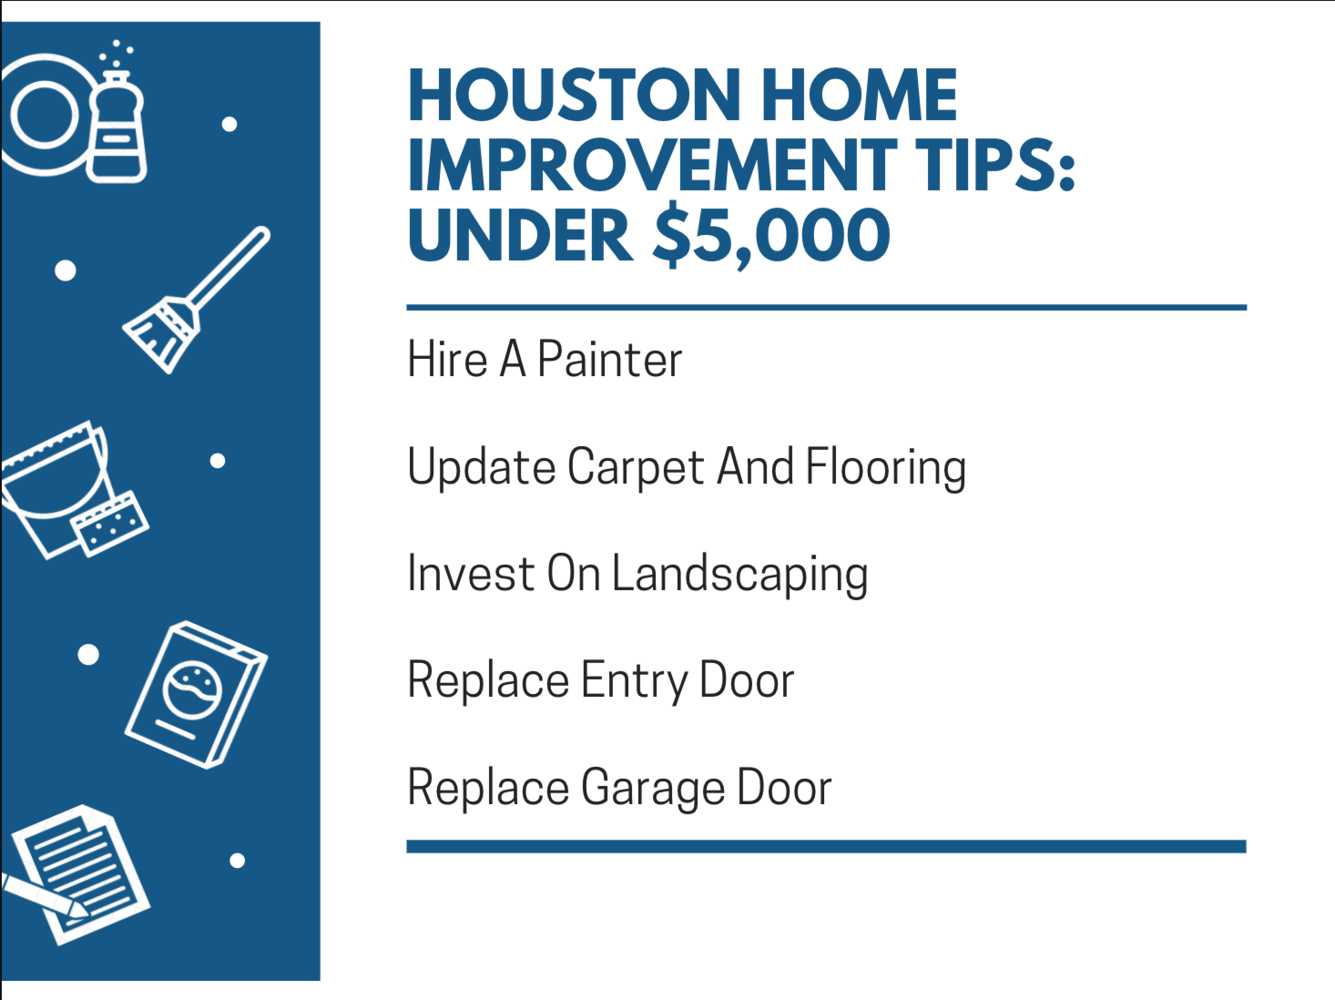 Houston Home Improvement Tips: Under $5,000